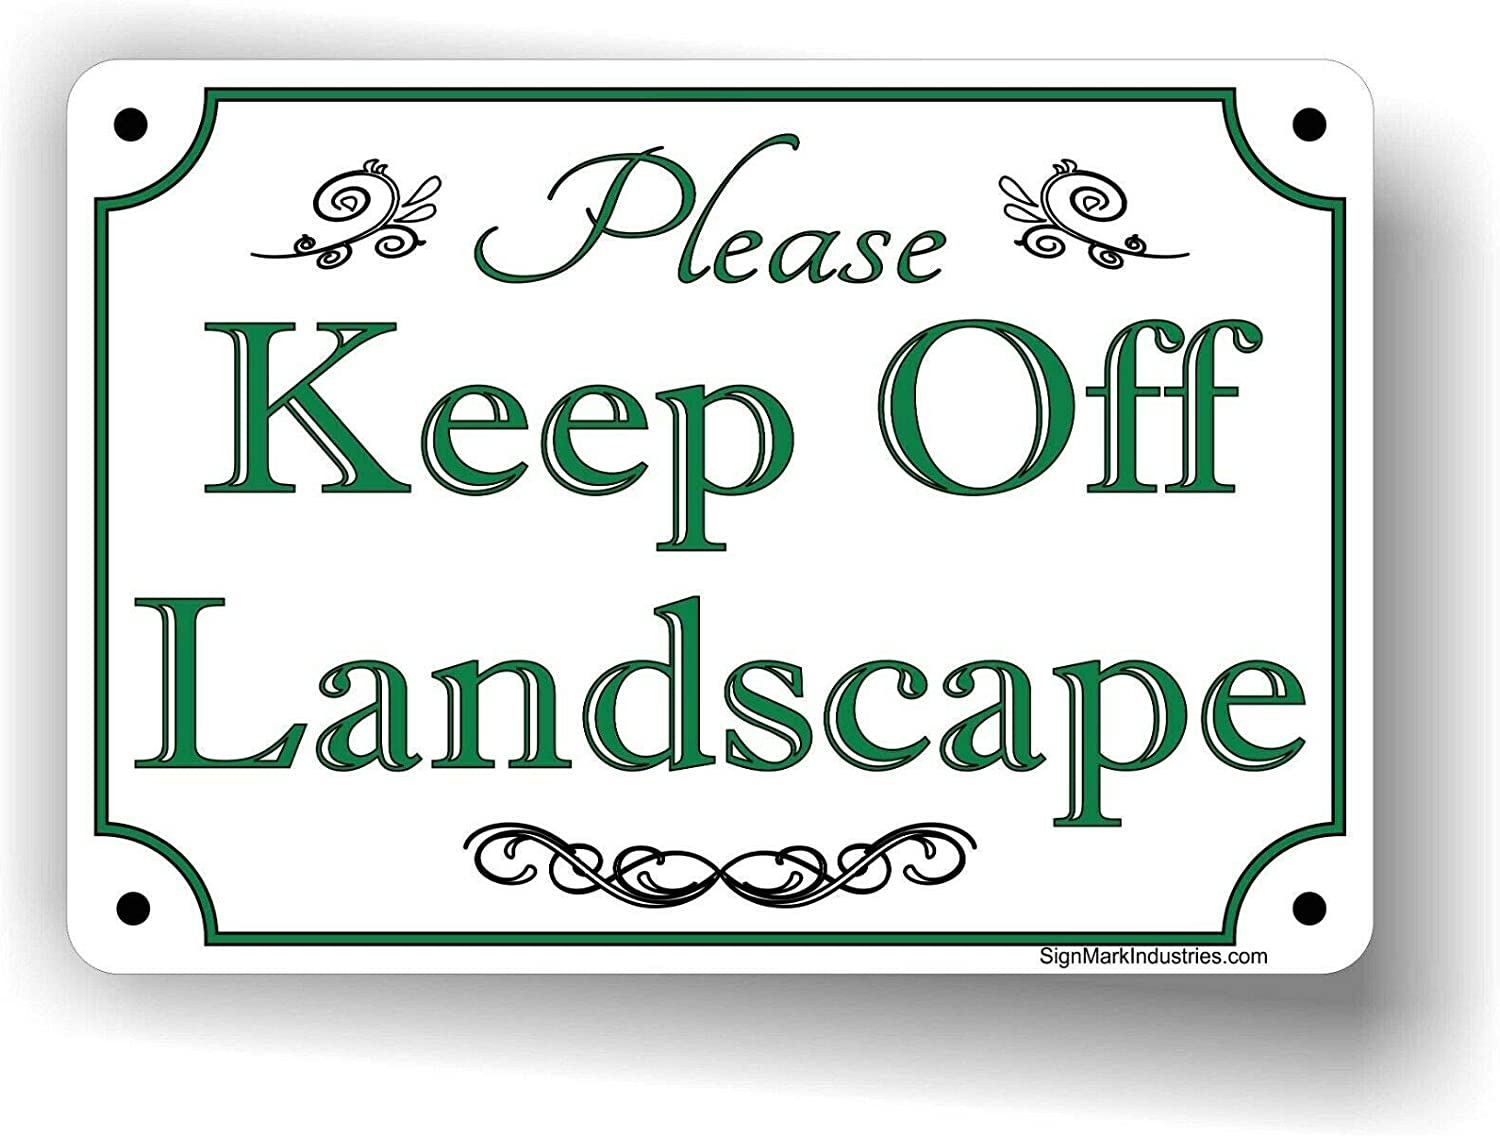 Please Super popular specialty Product store Keep Off Landscape Tin Landscaping 12 Sign